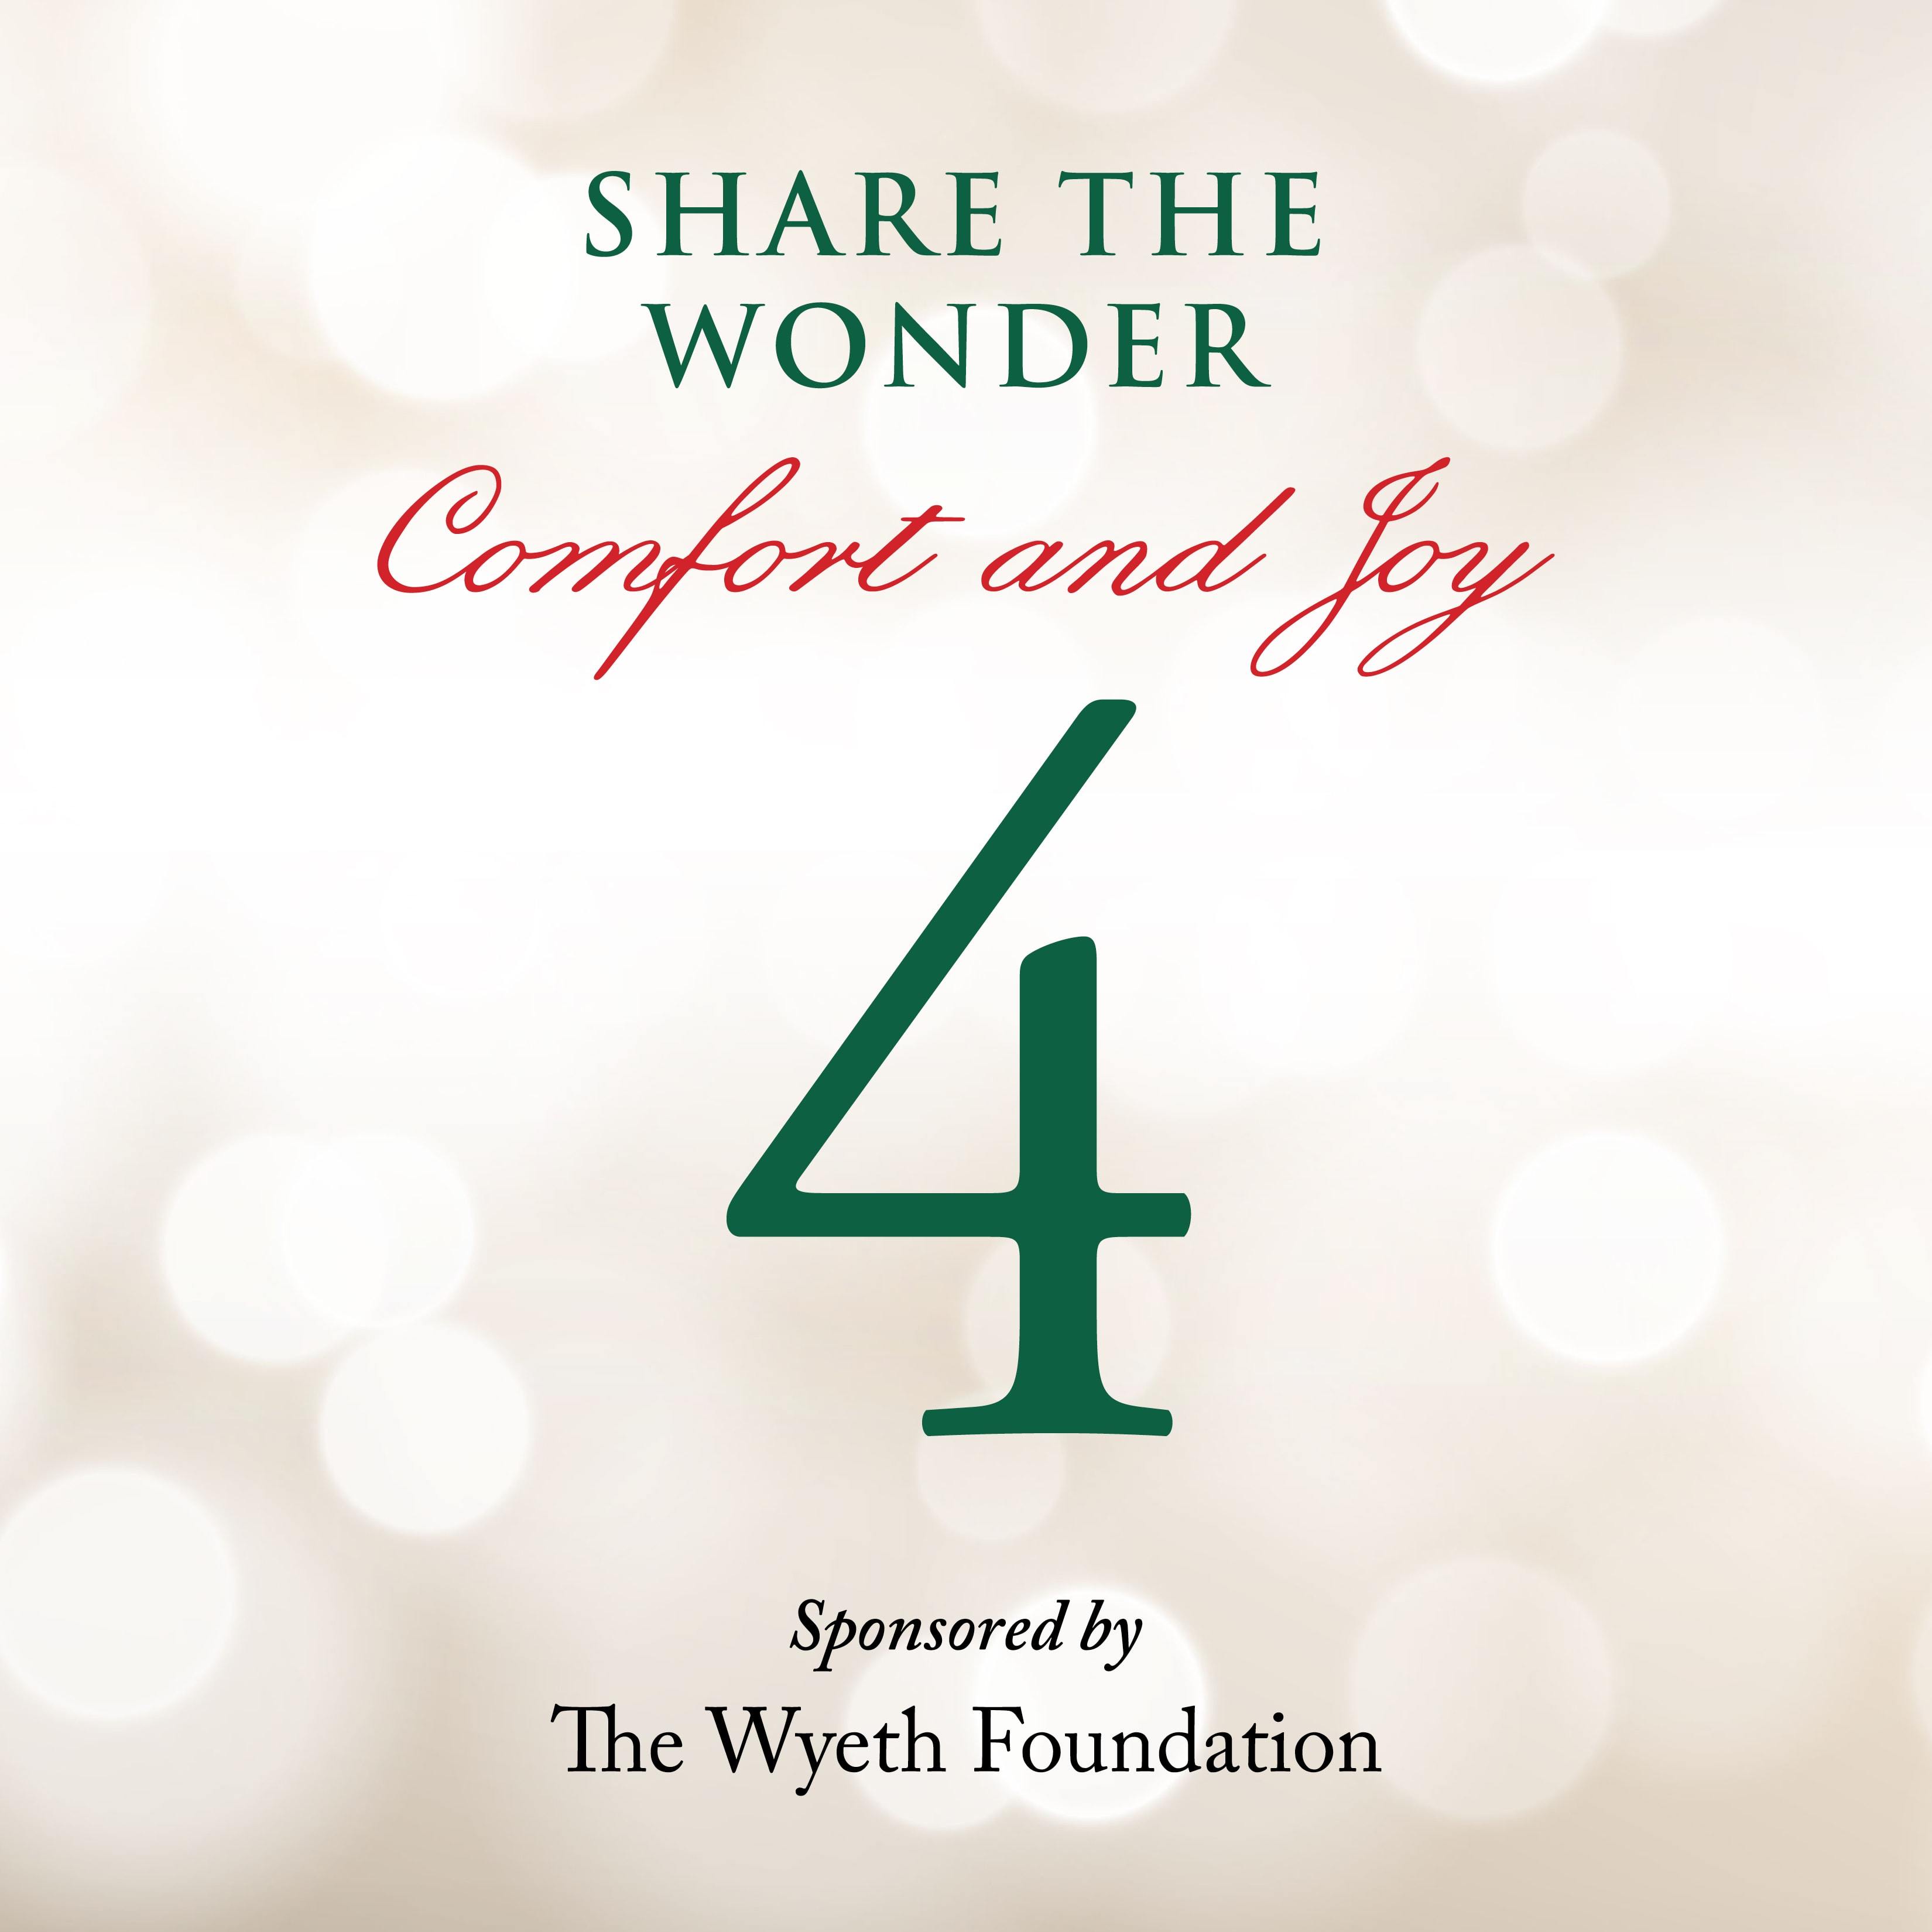 Day 4 of Share the Wonder: December 1